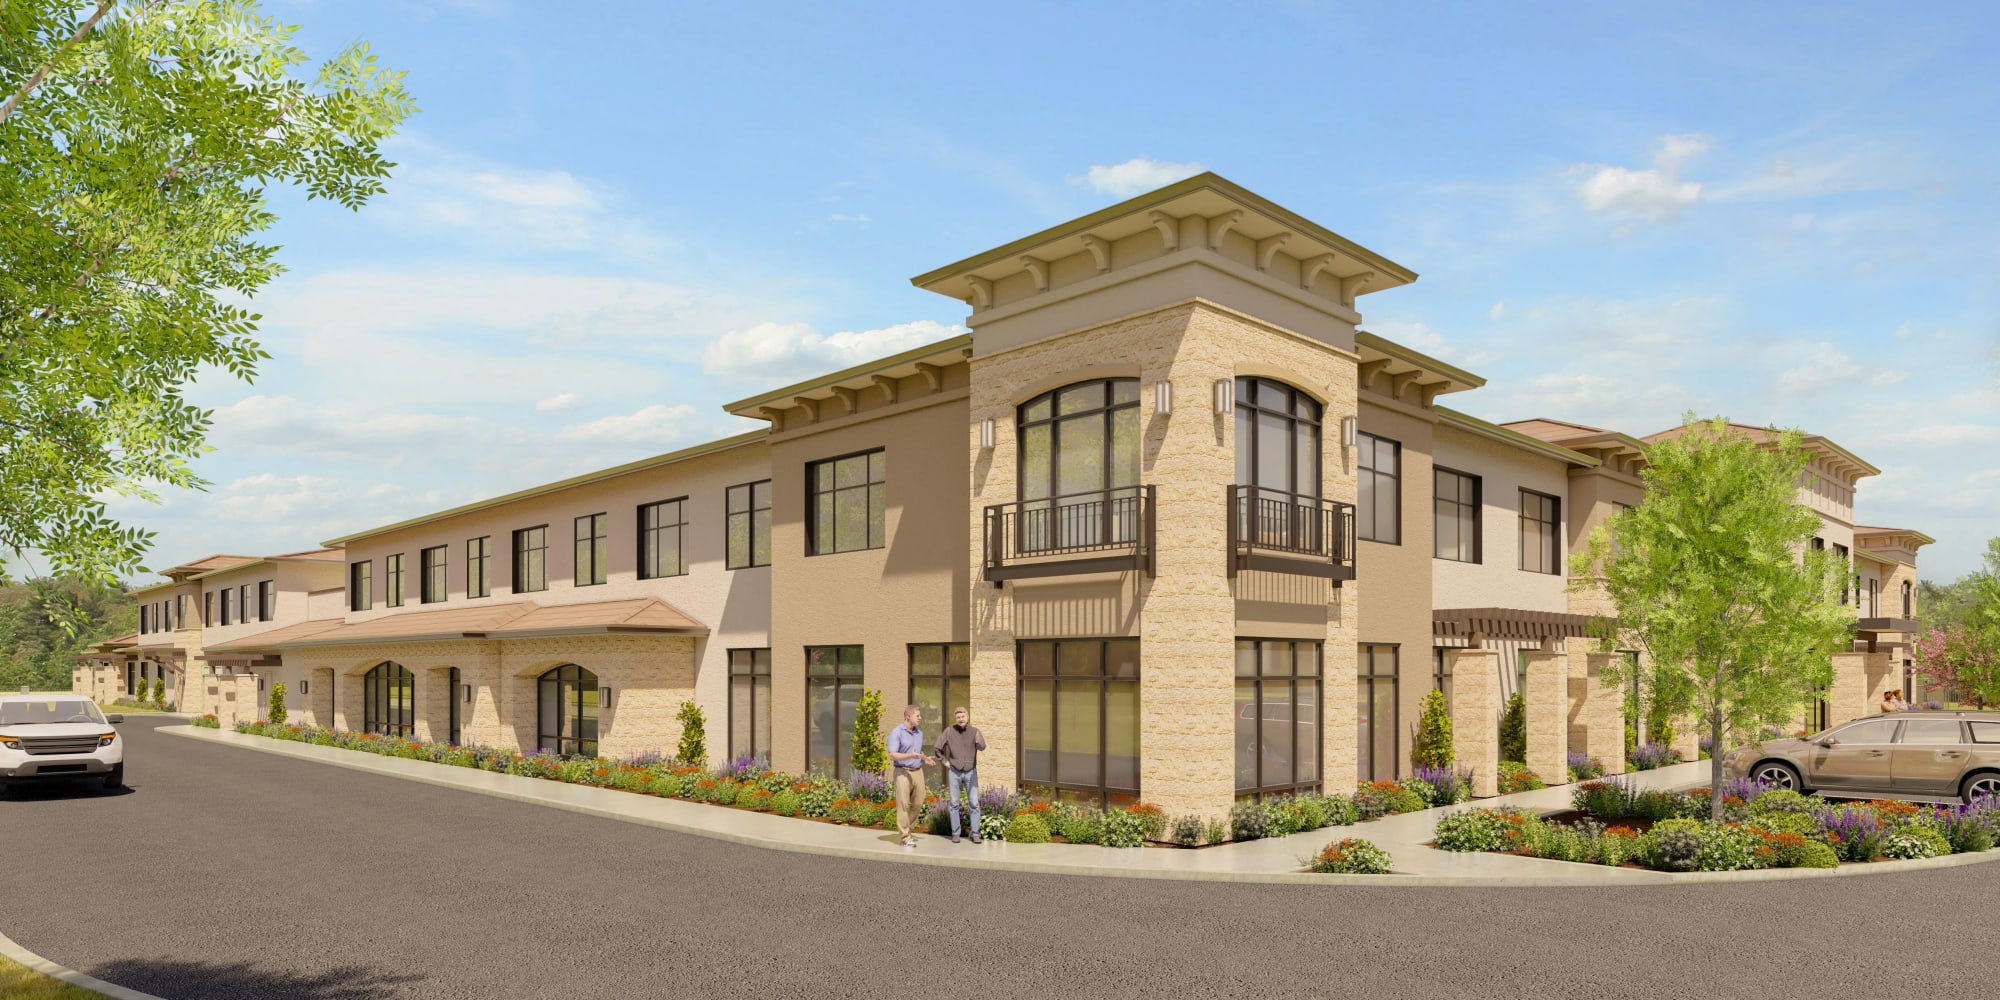 Senior living at Carefield Living Citrus Heights in Citrus Heights, California.